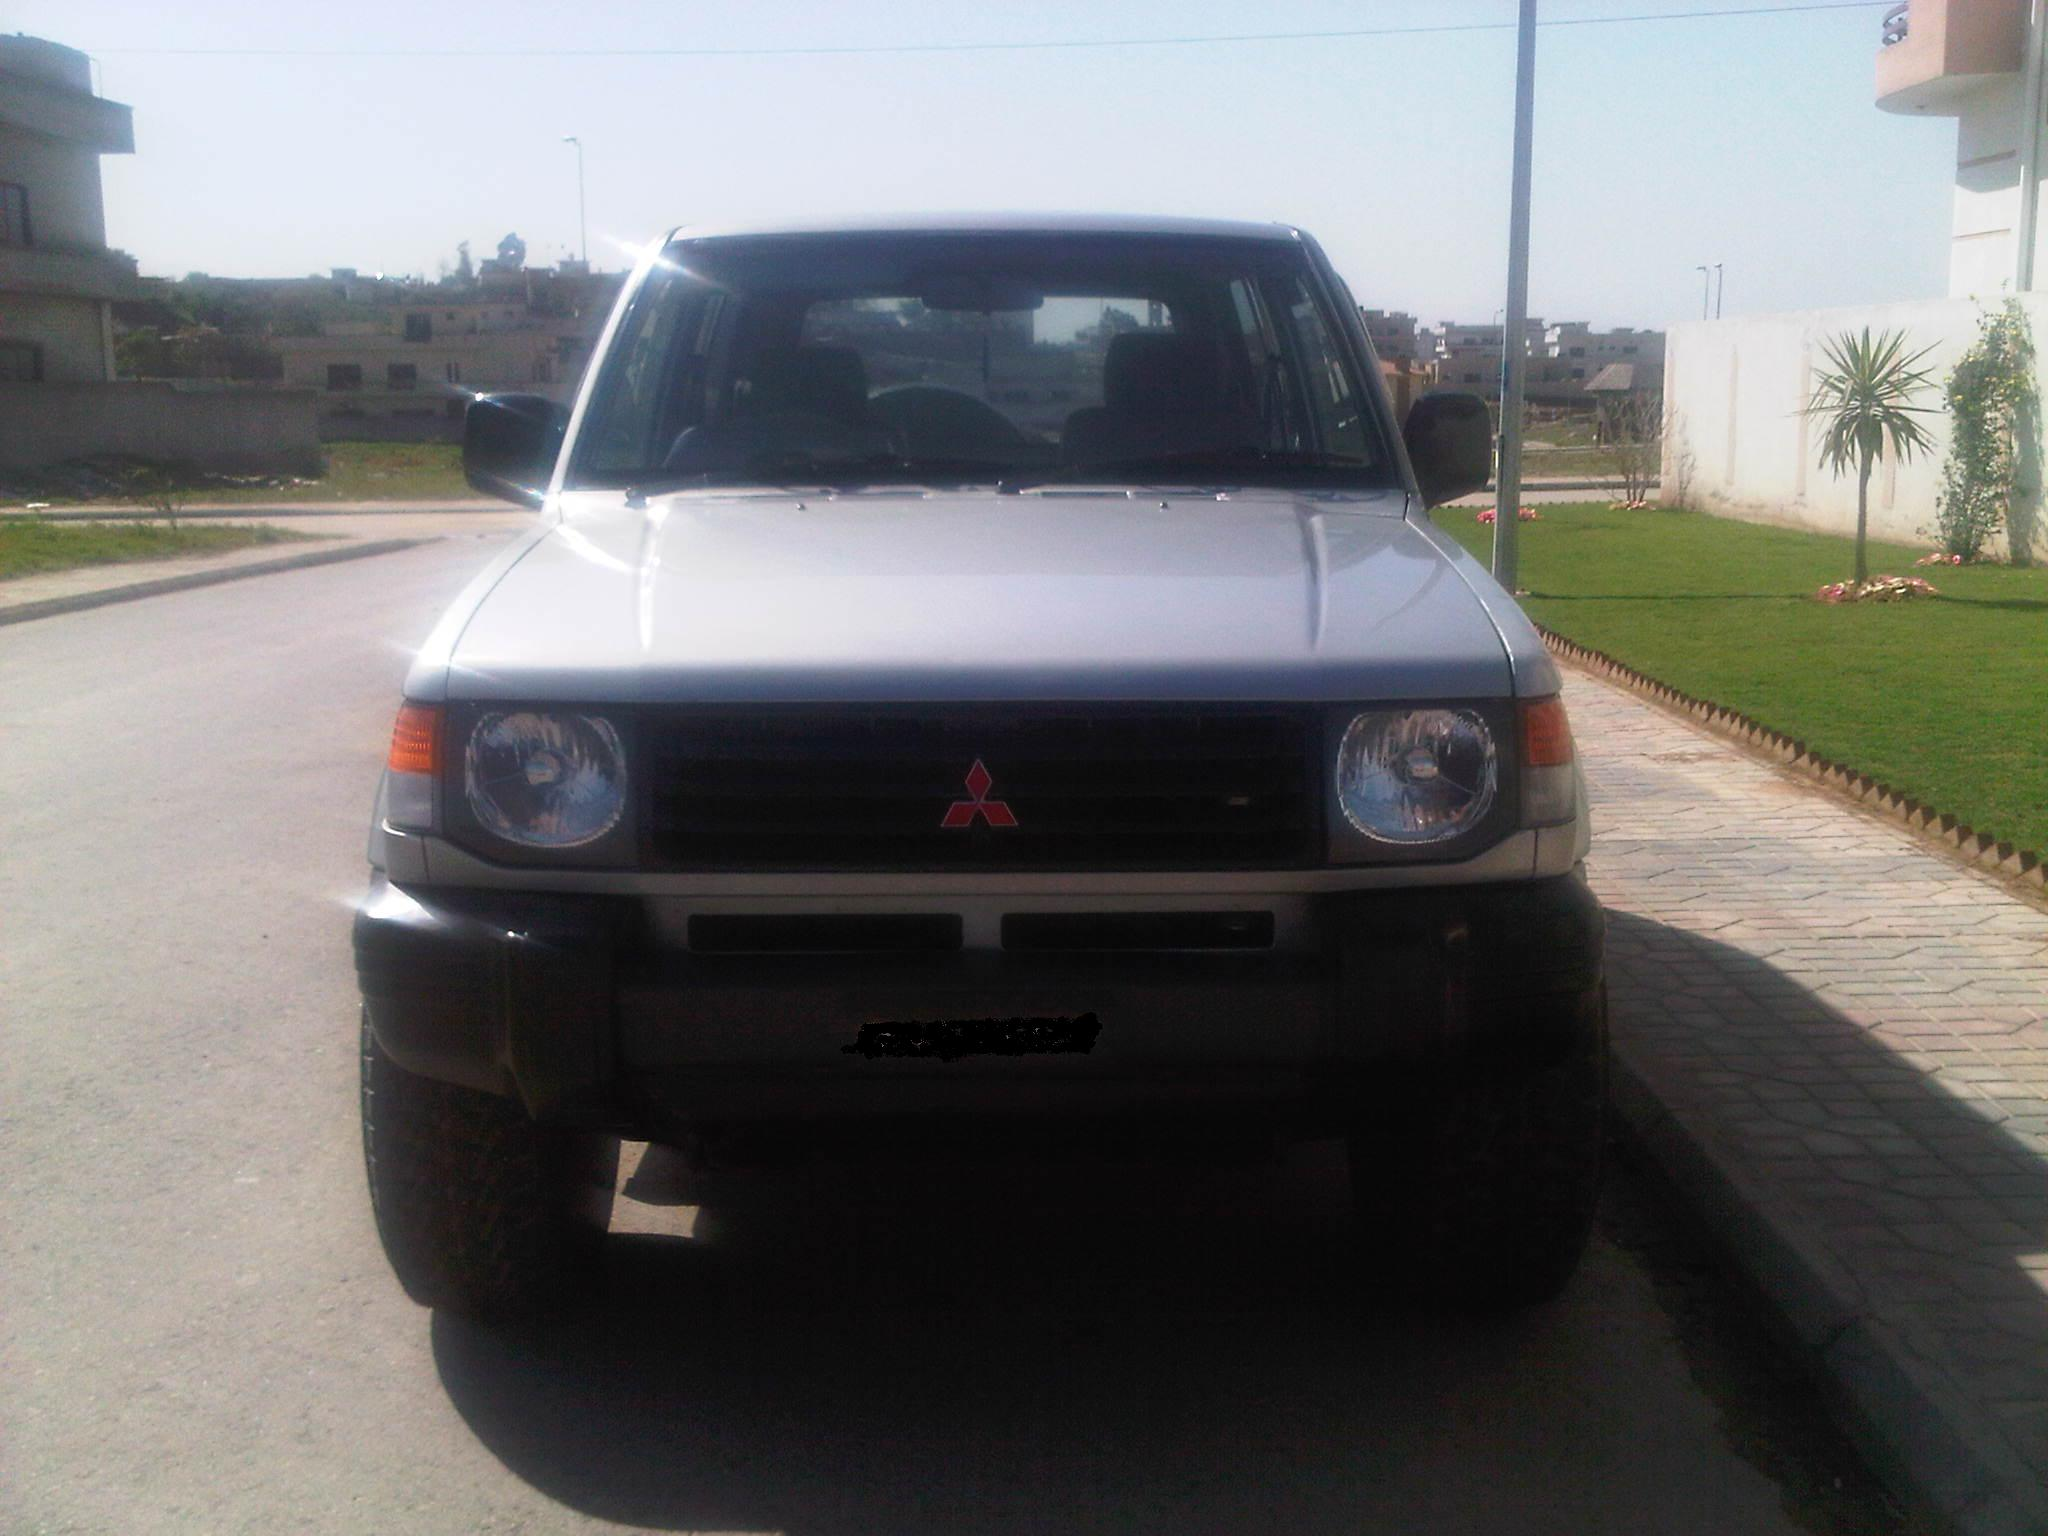 Mitsubishi Pajero 1997 of hasan - 37947